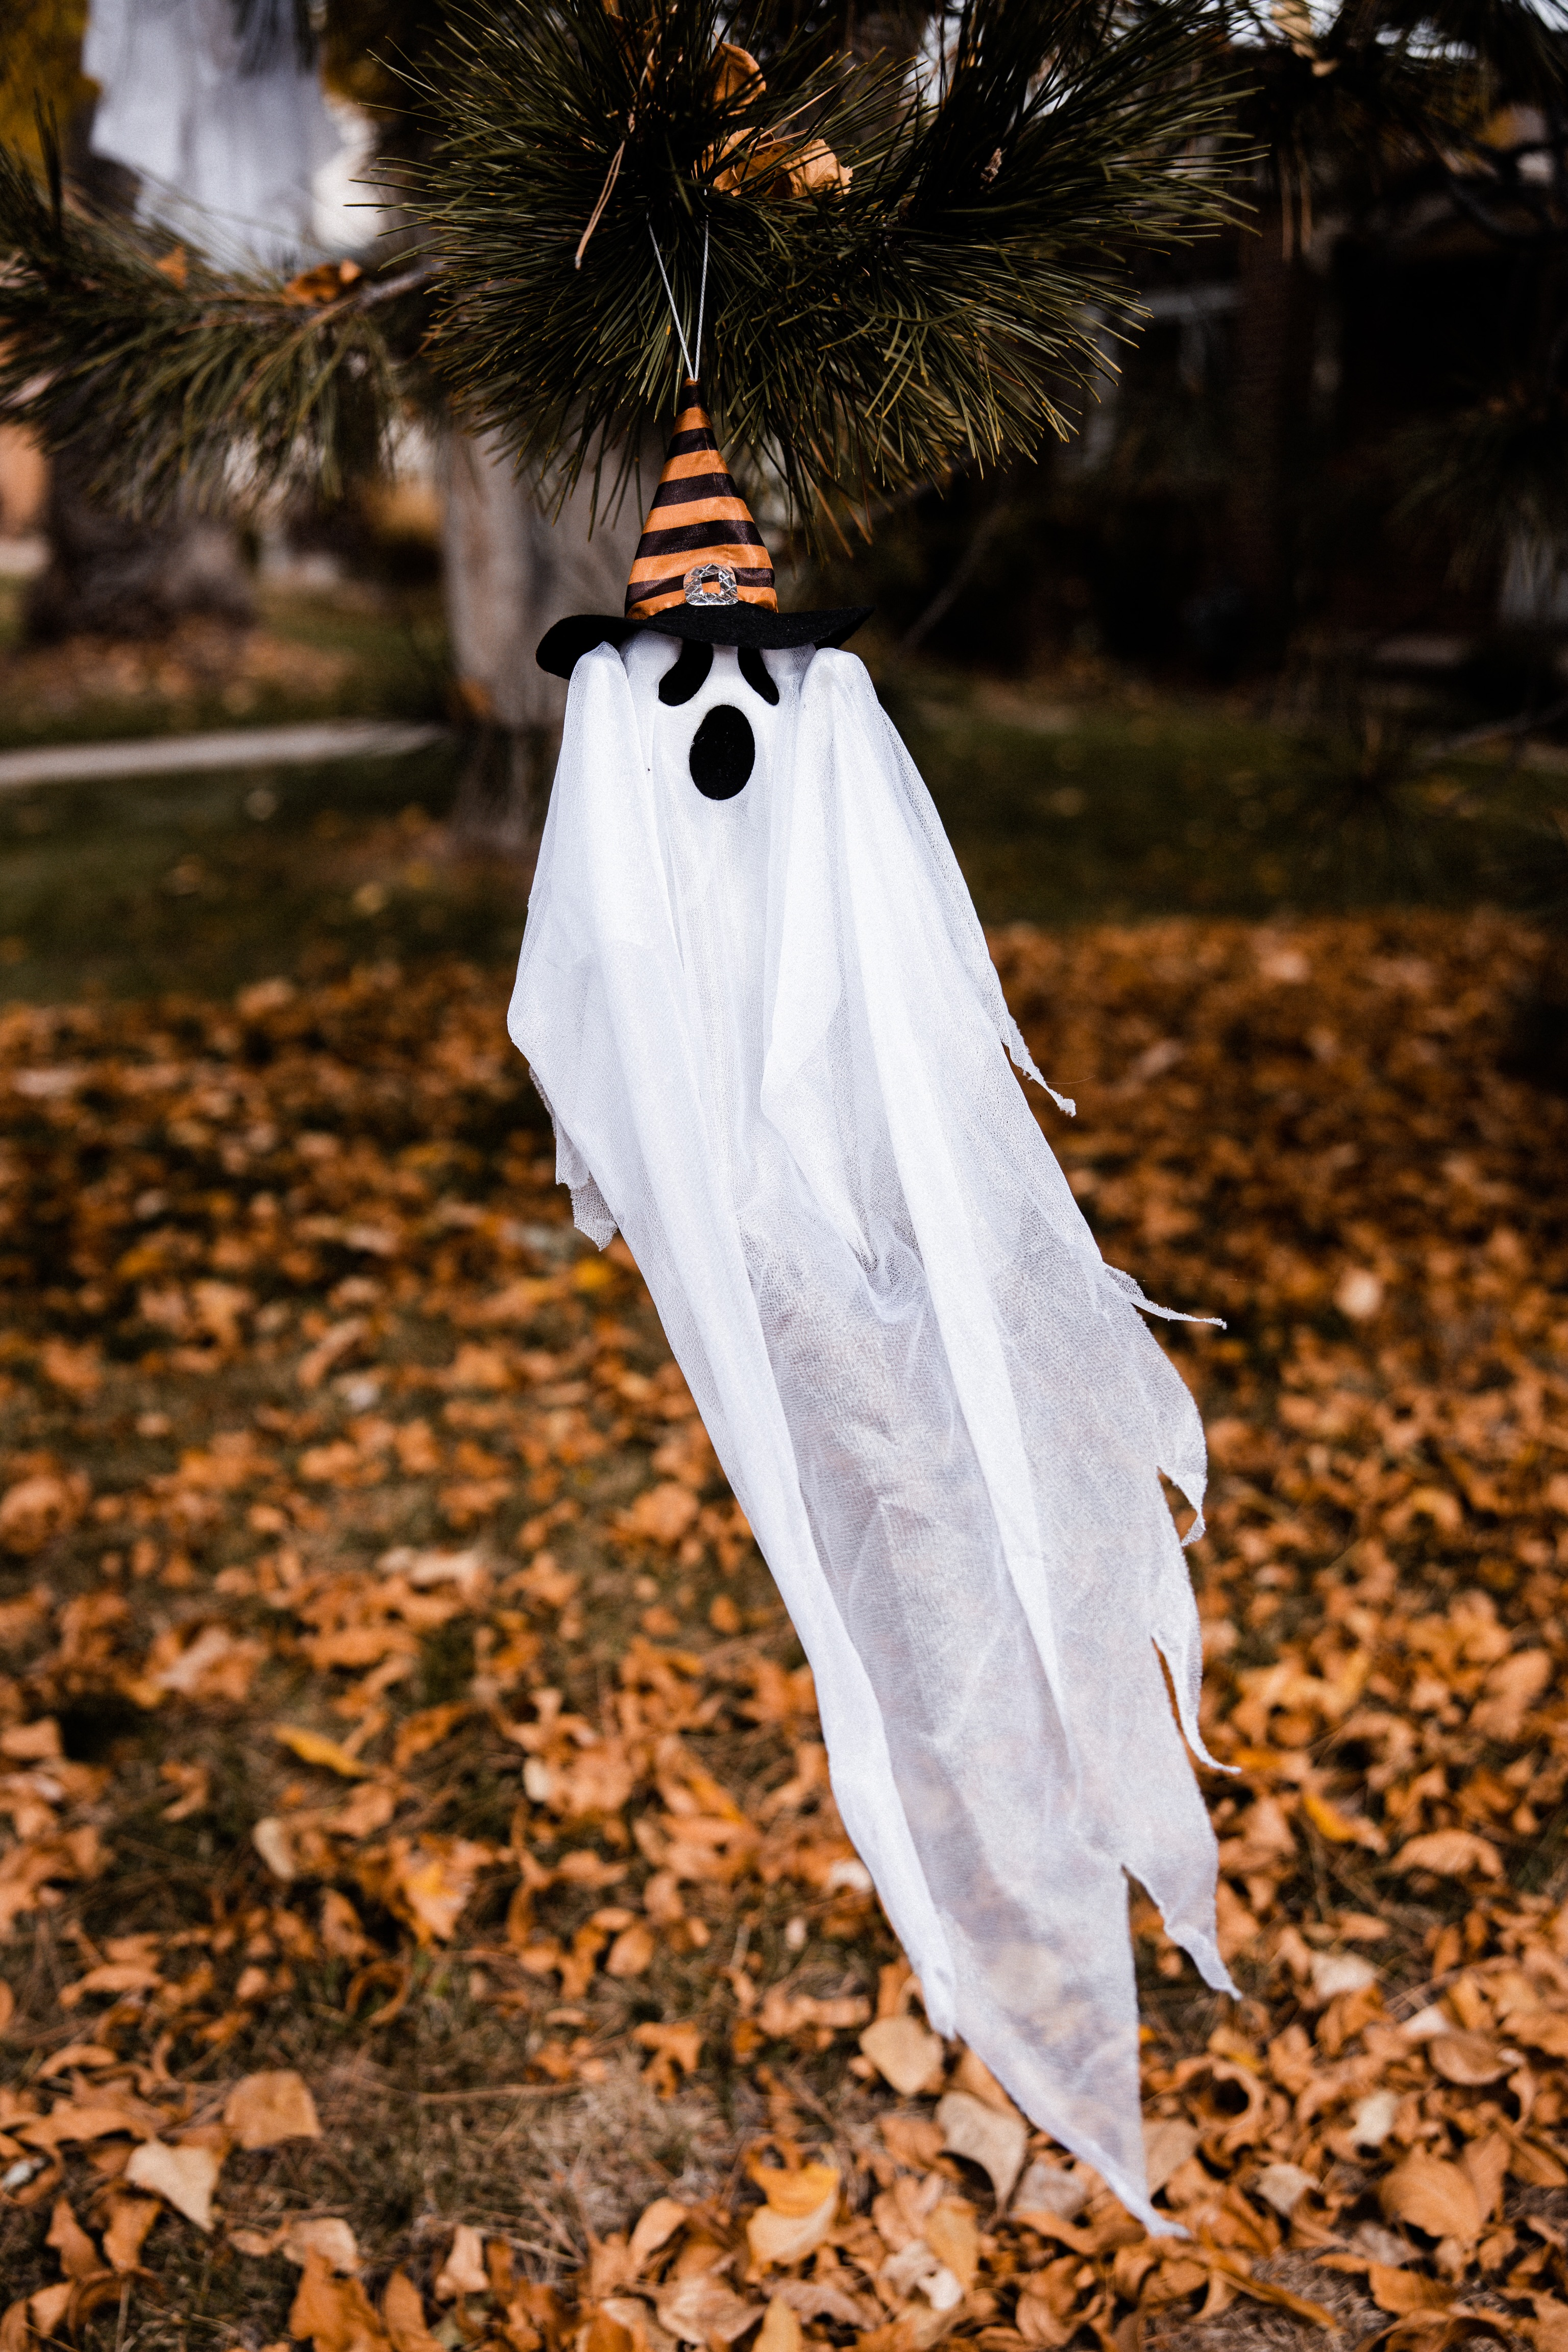 woman-in-white-dress-standing-on-dried-leaves-during-daytime